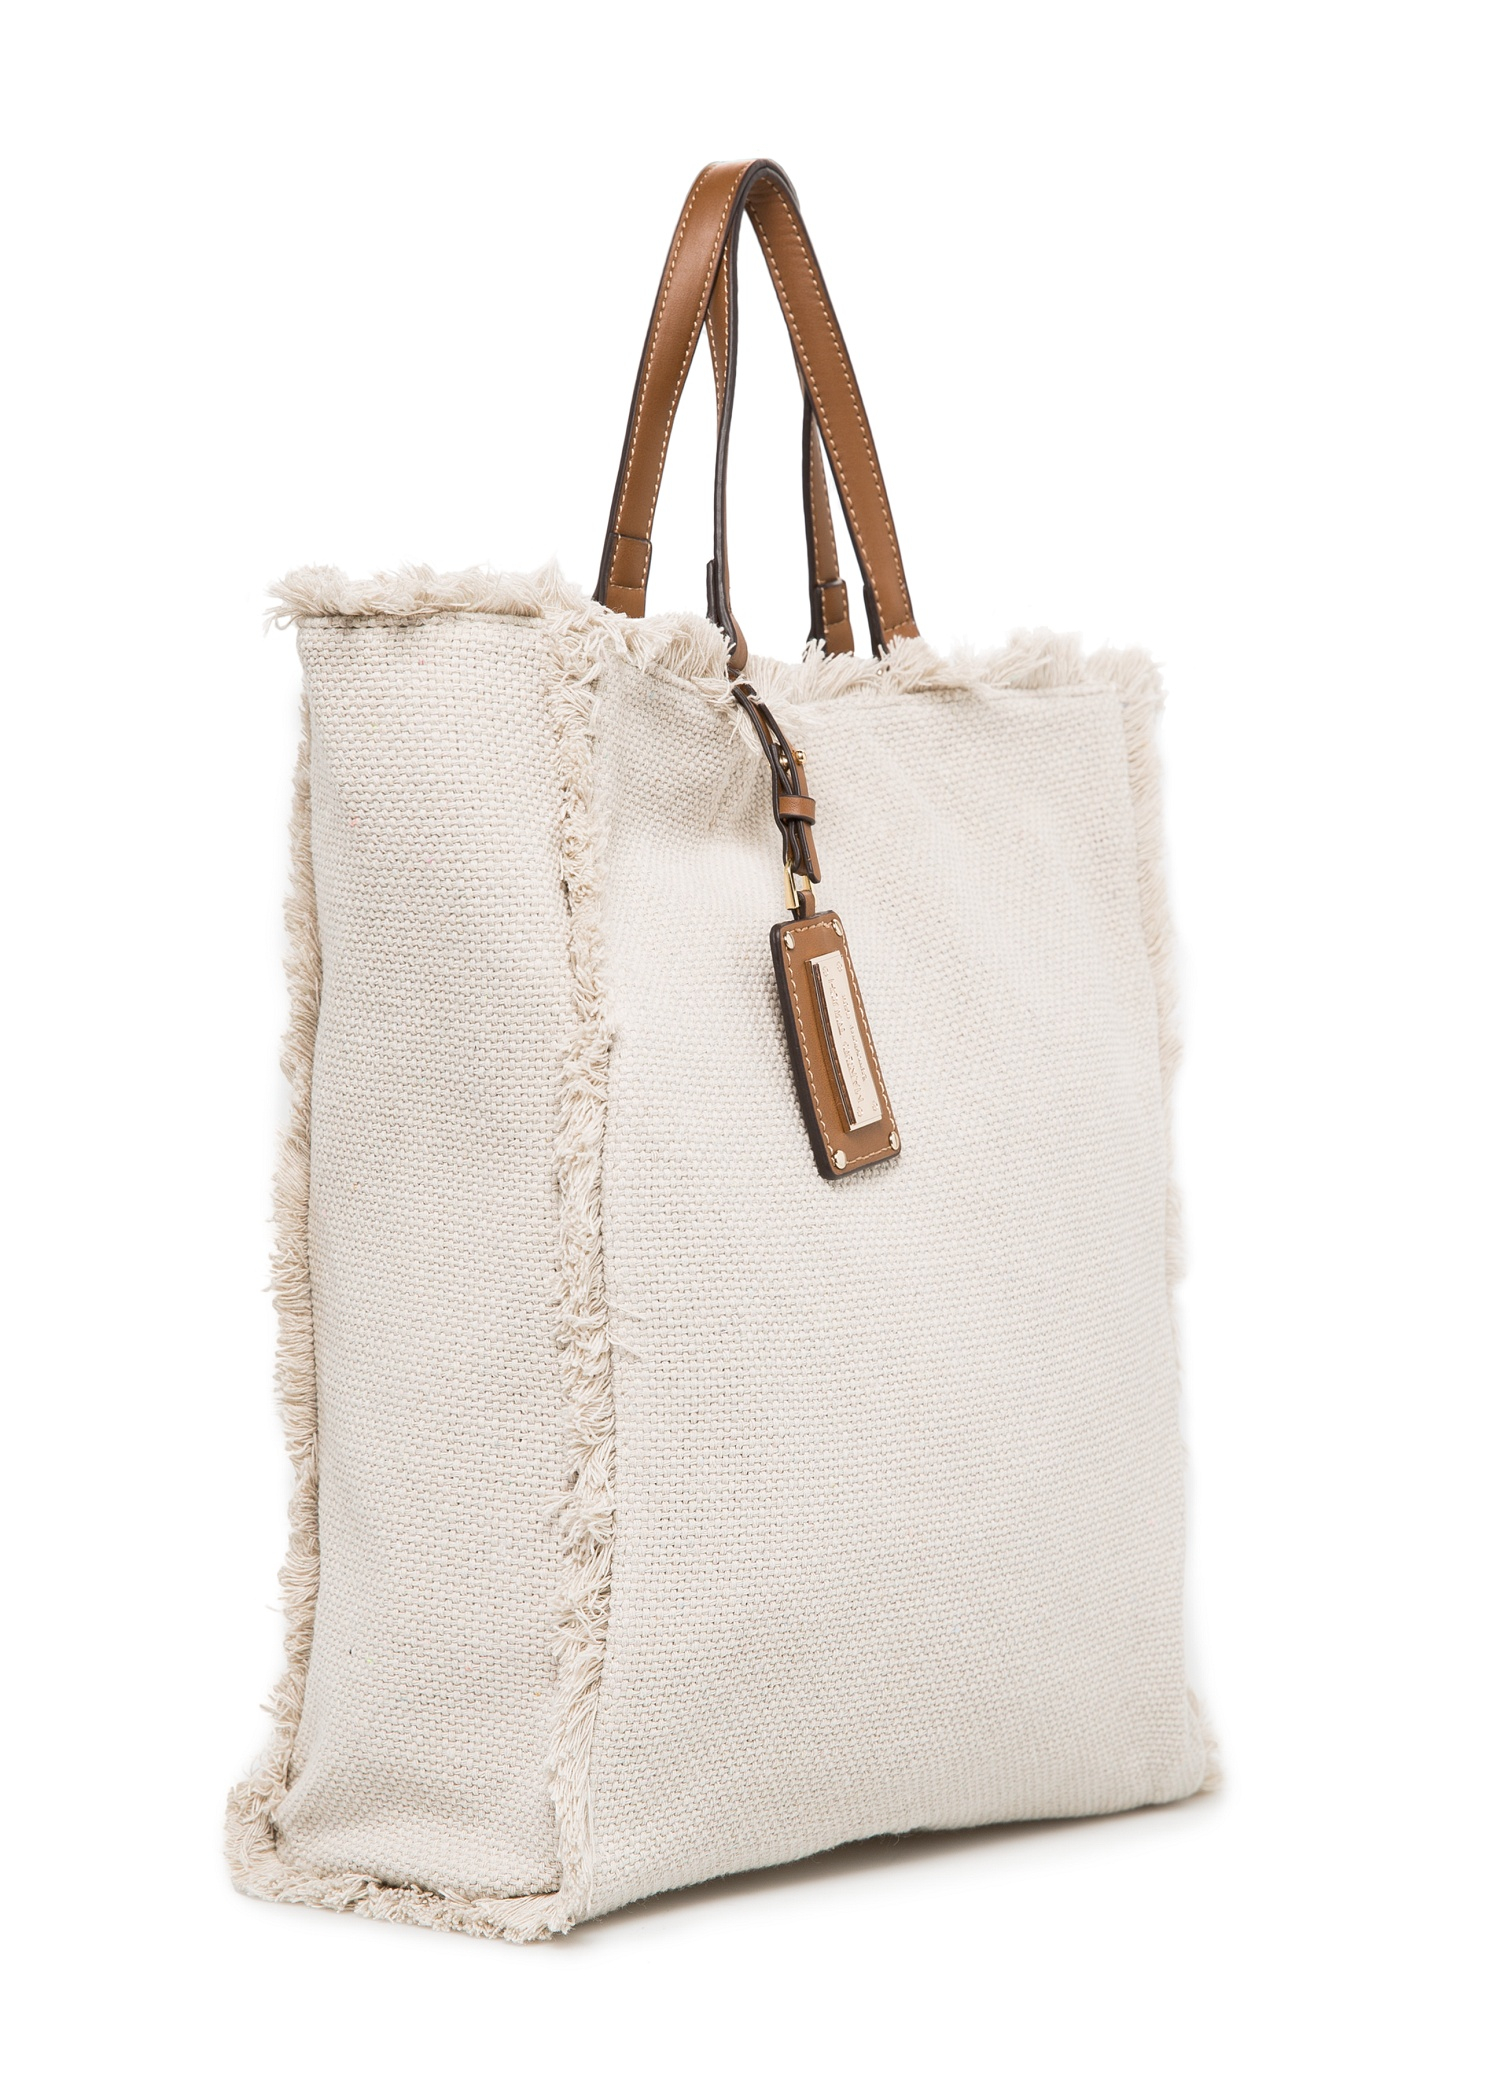 Mango Canvas Shopper Bag in Natural | Lyst